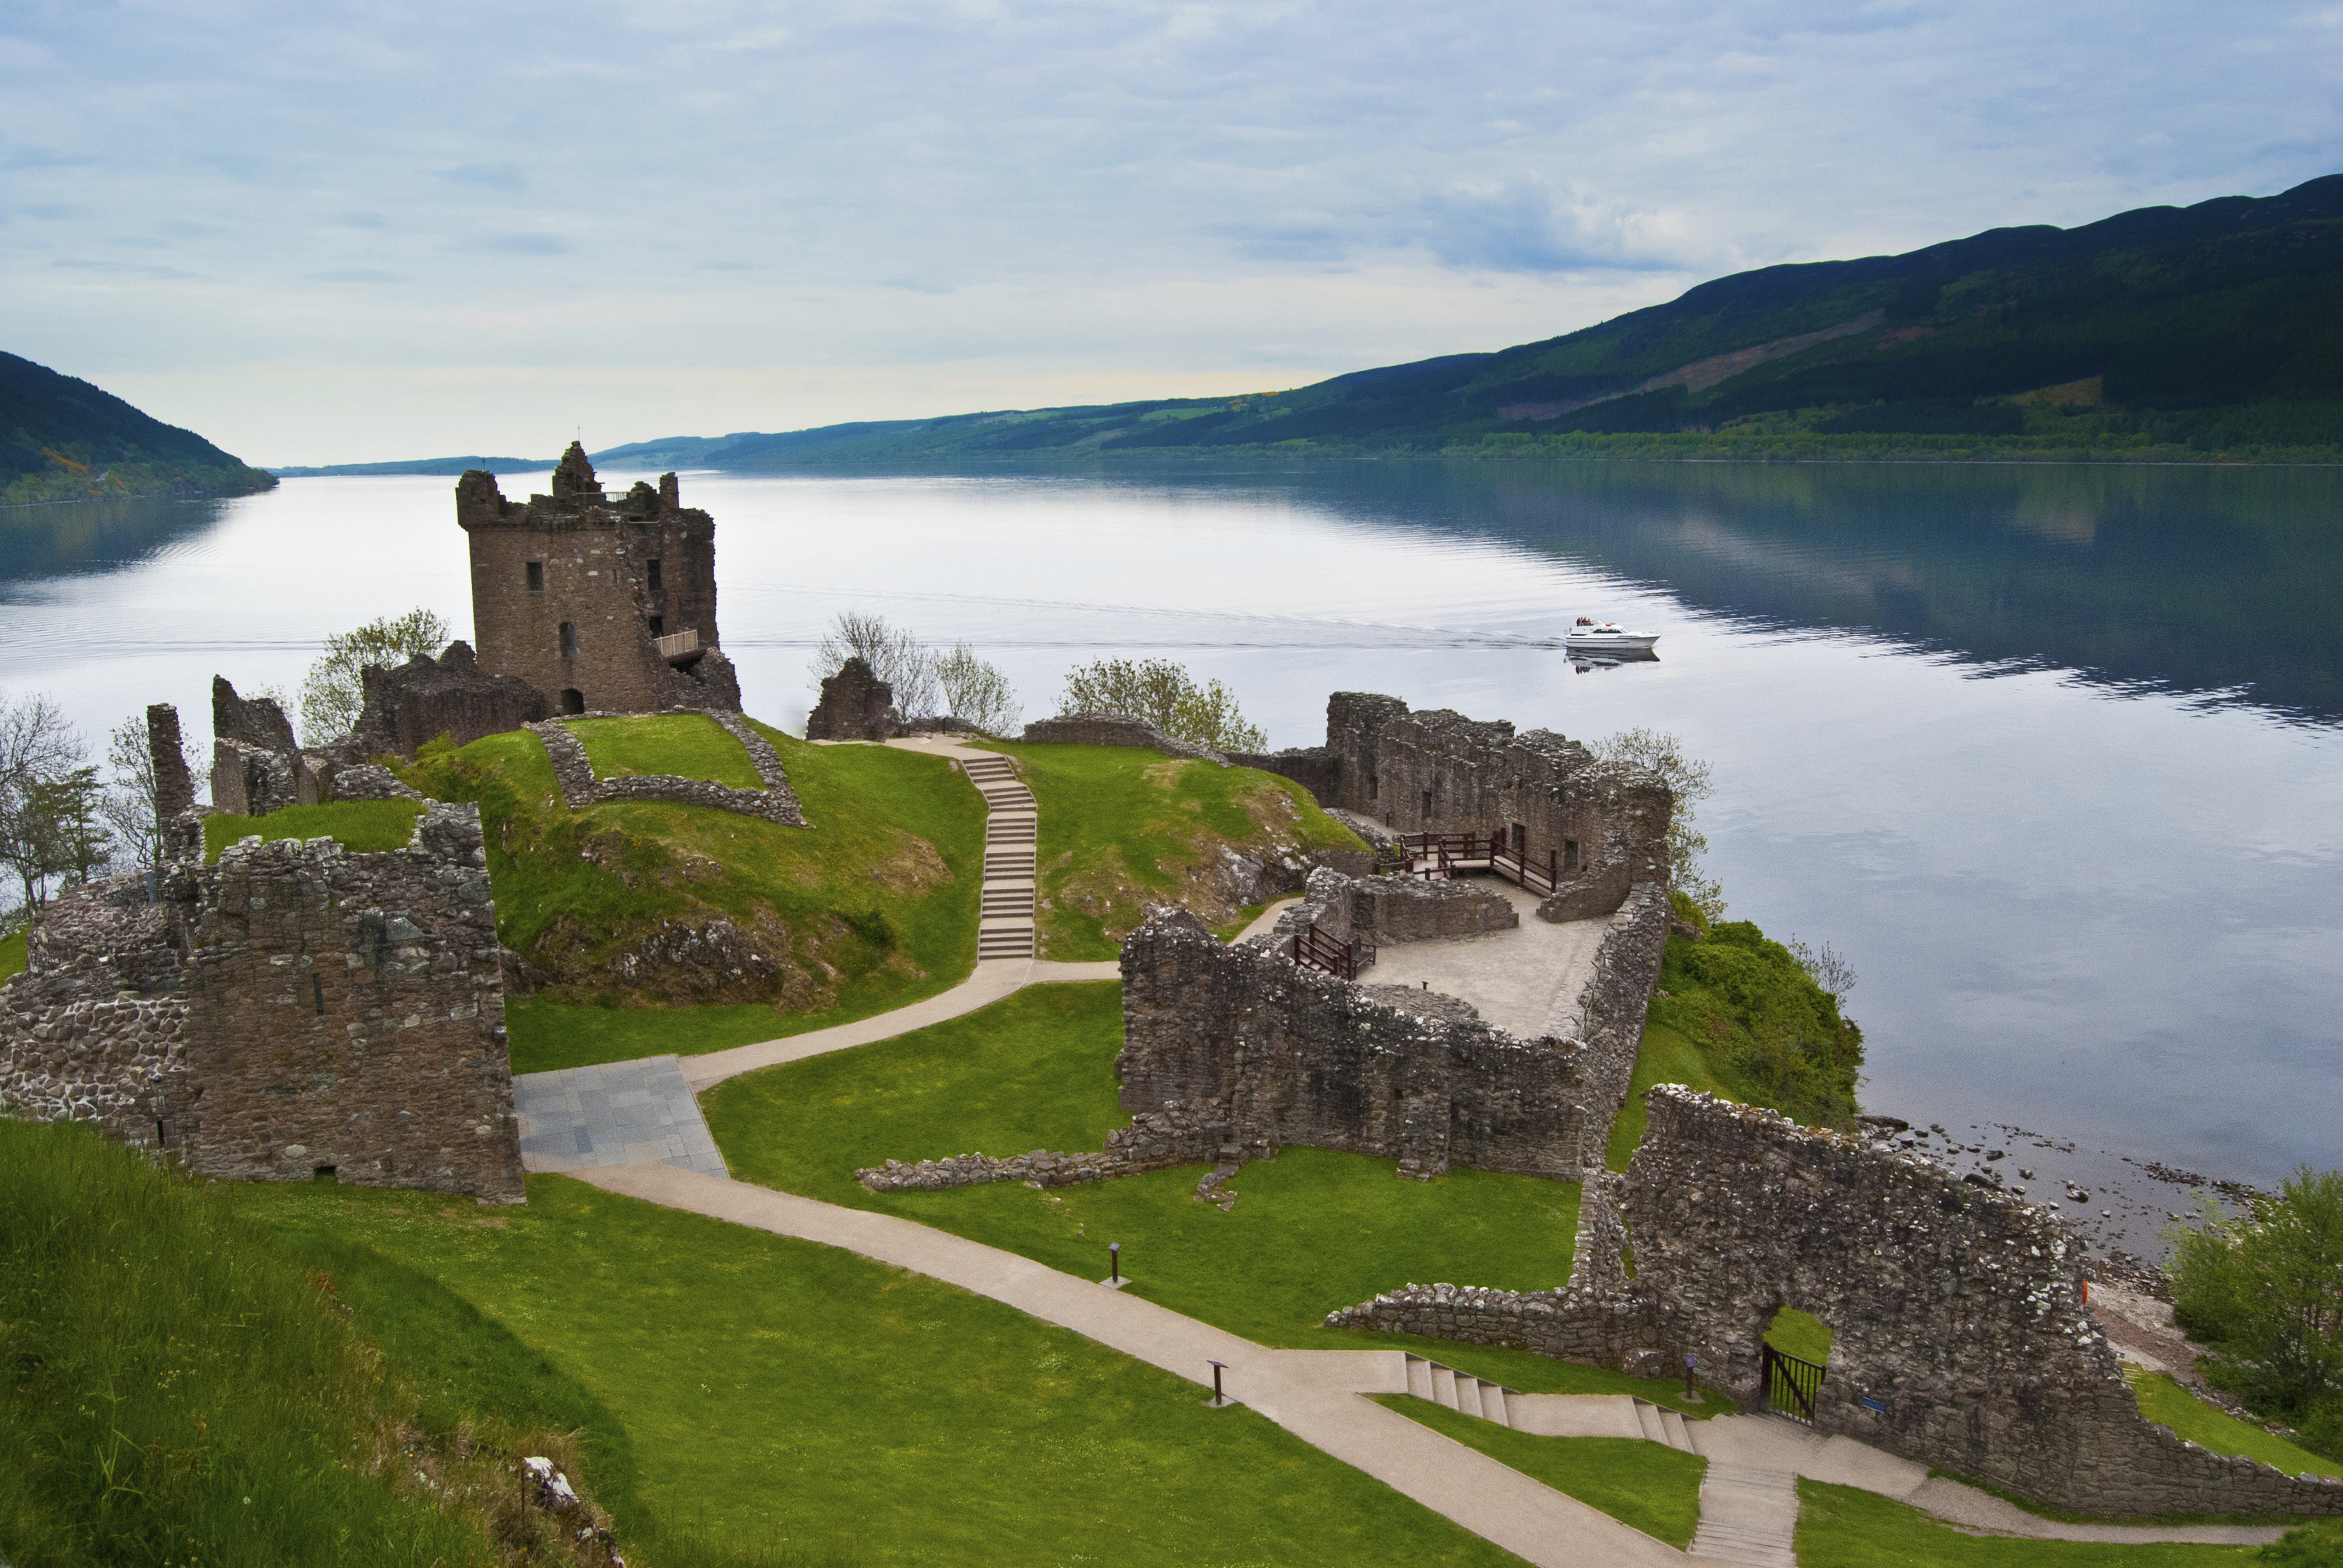 Urquhart Castle on the banks of Loch Ness.